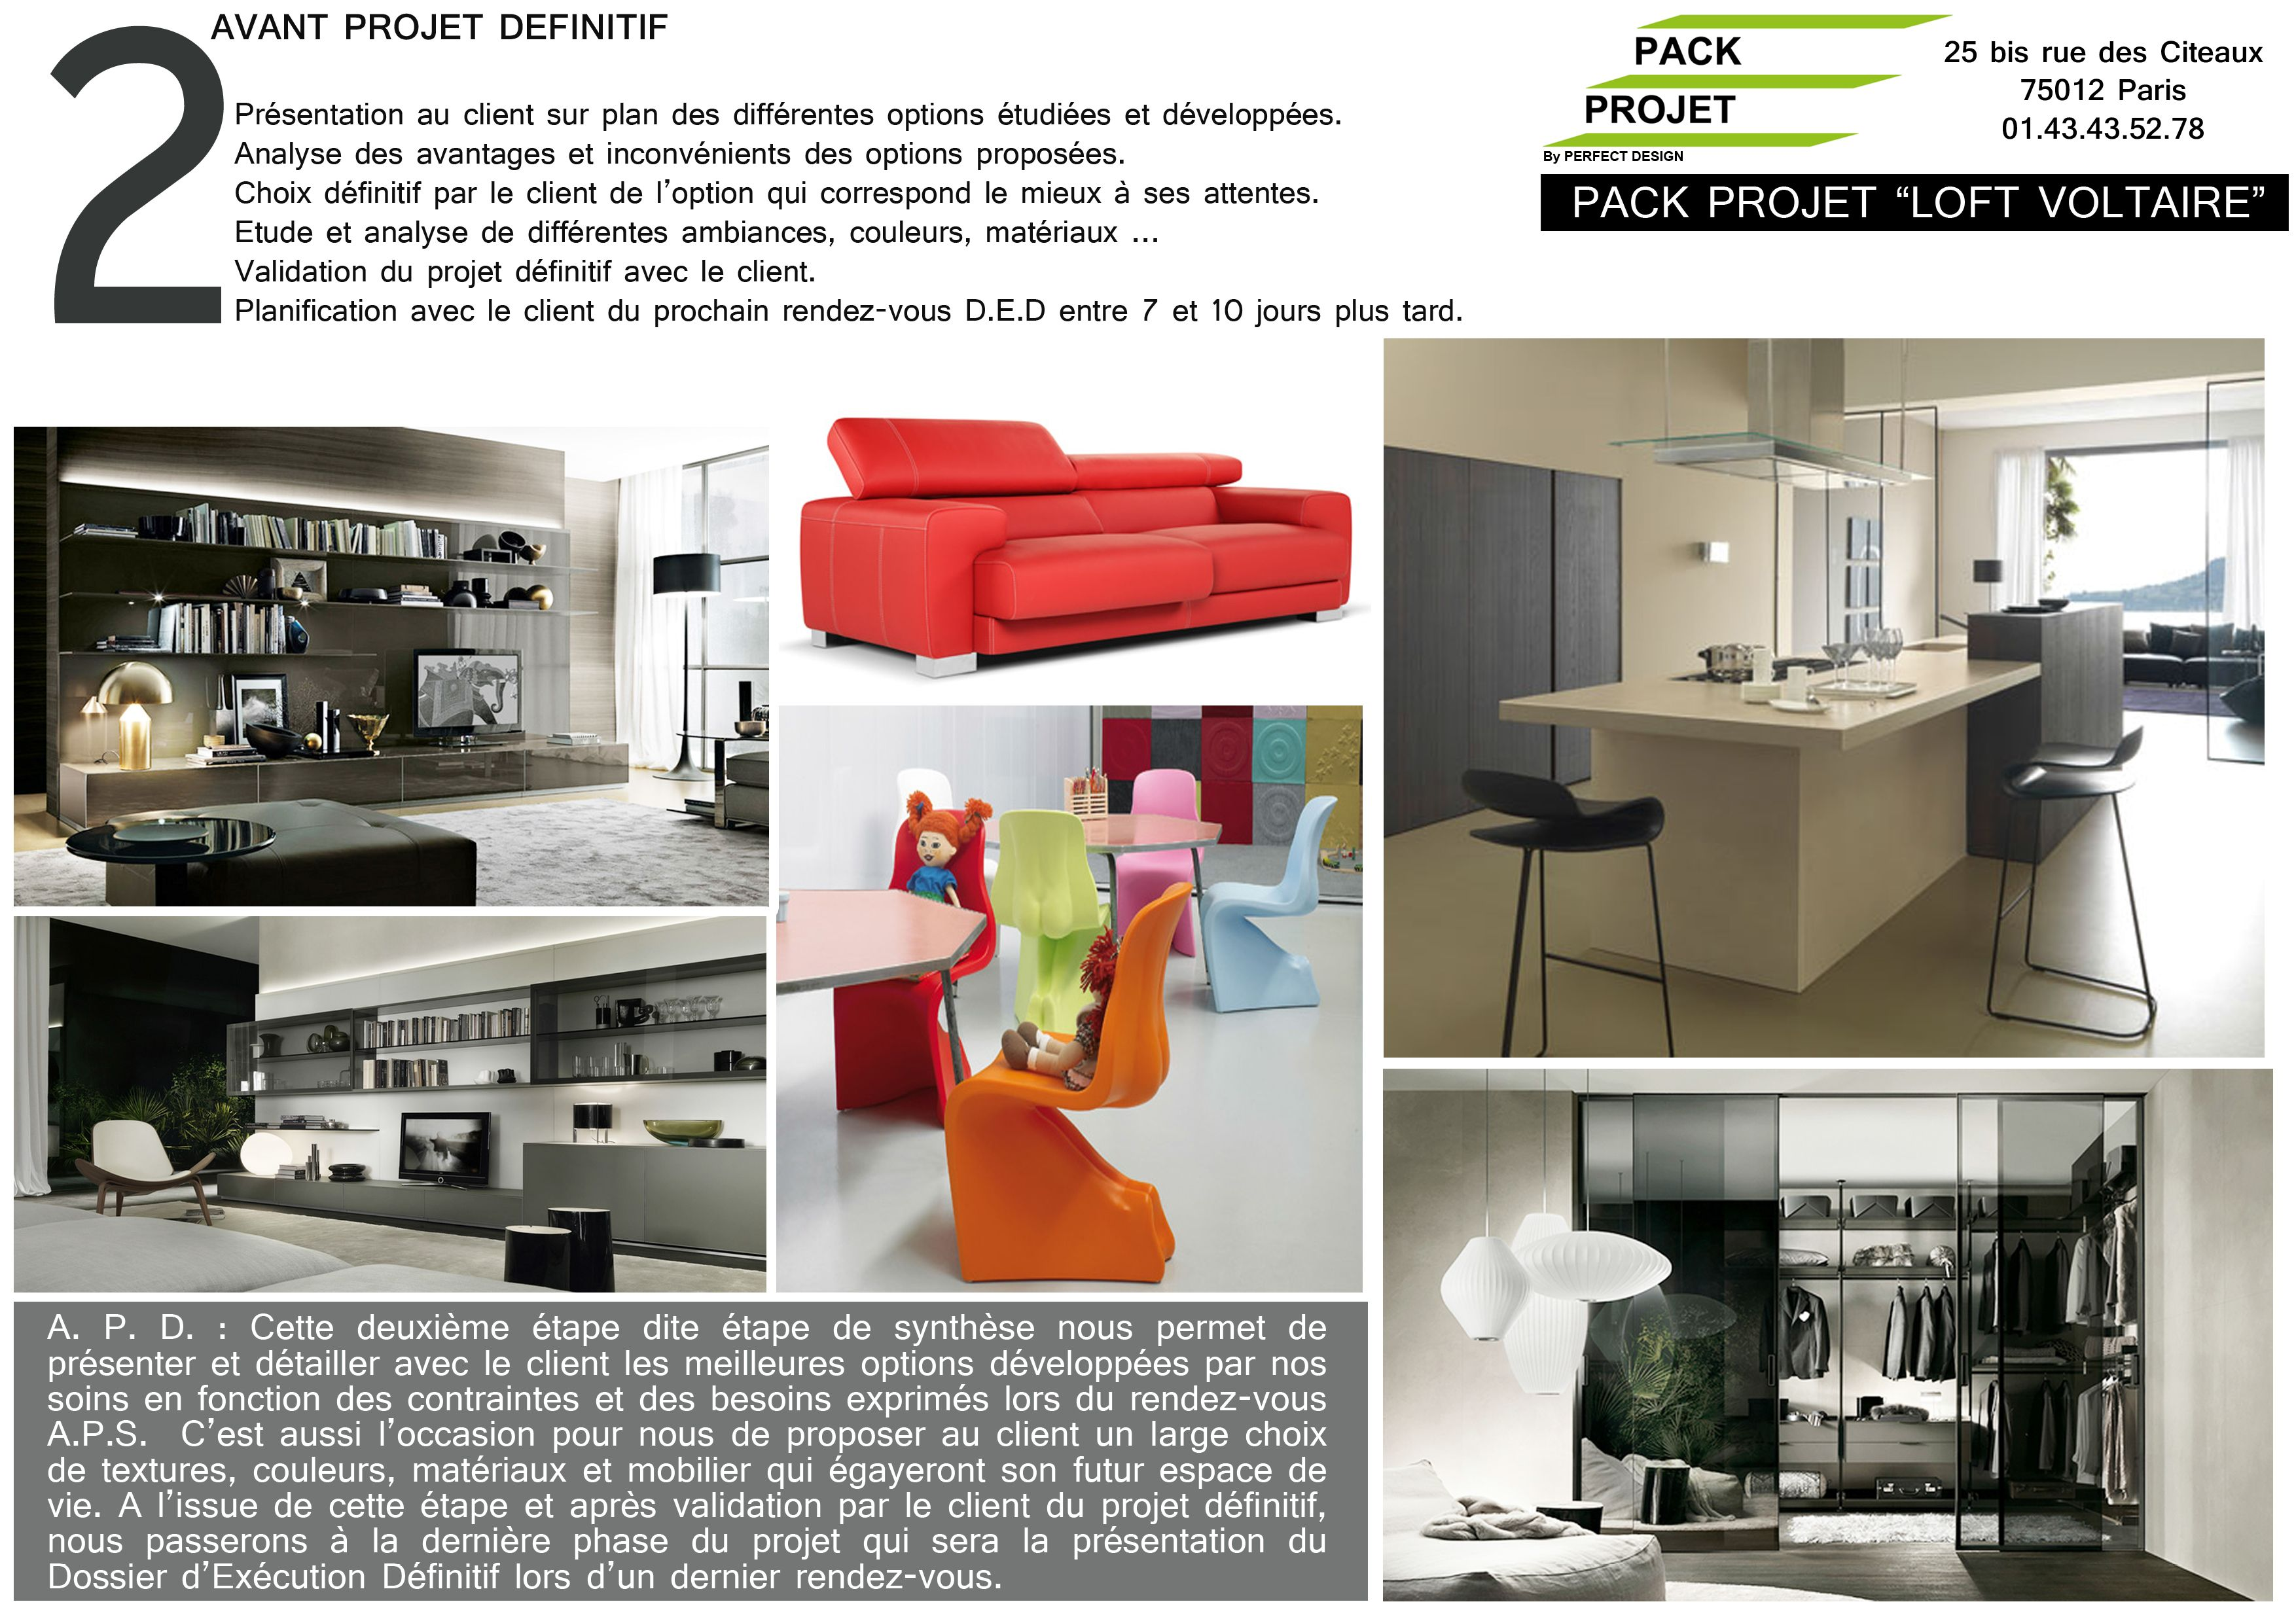 www pack projet com creation dossier de plans coupes elevations